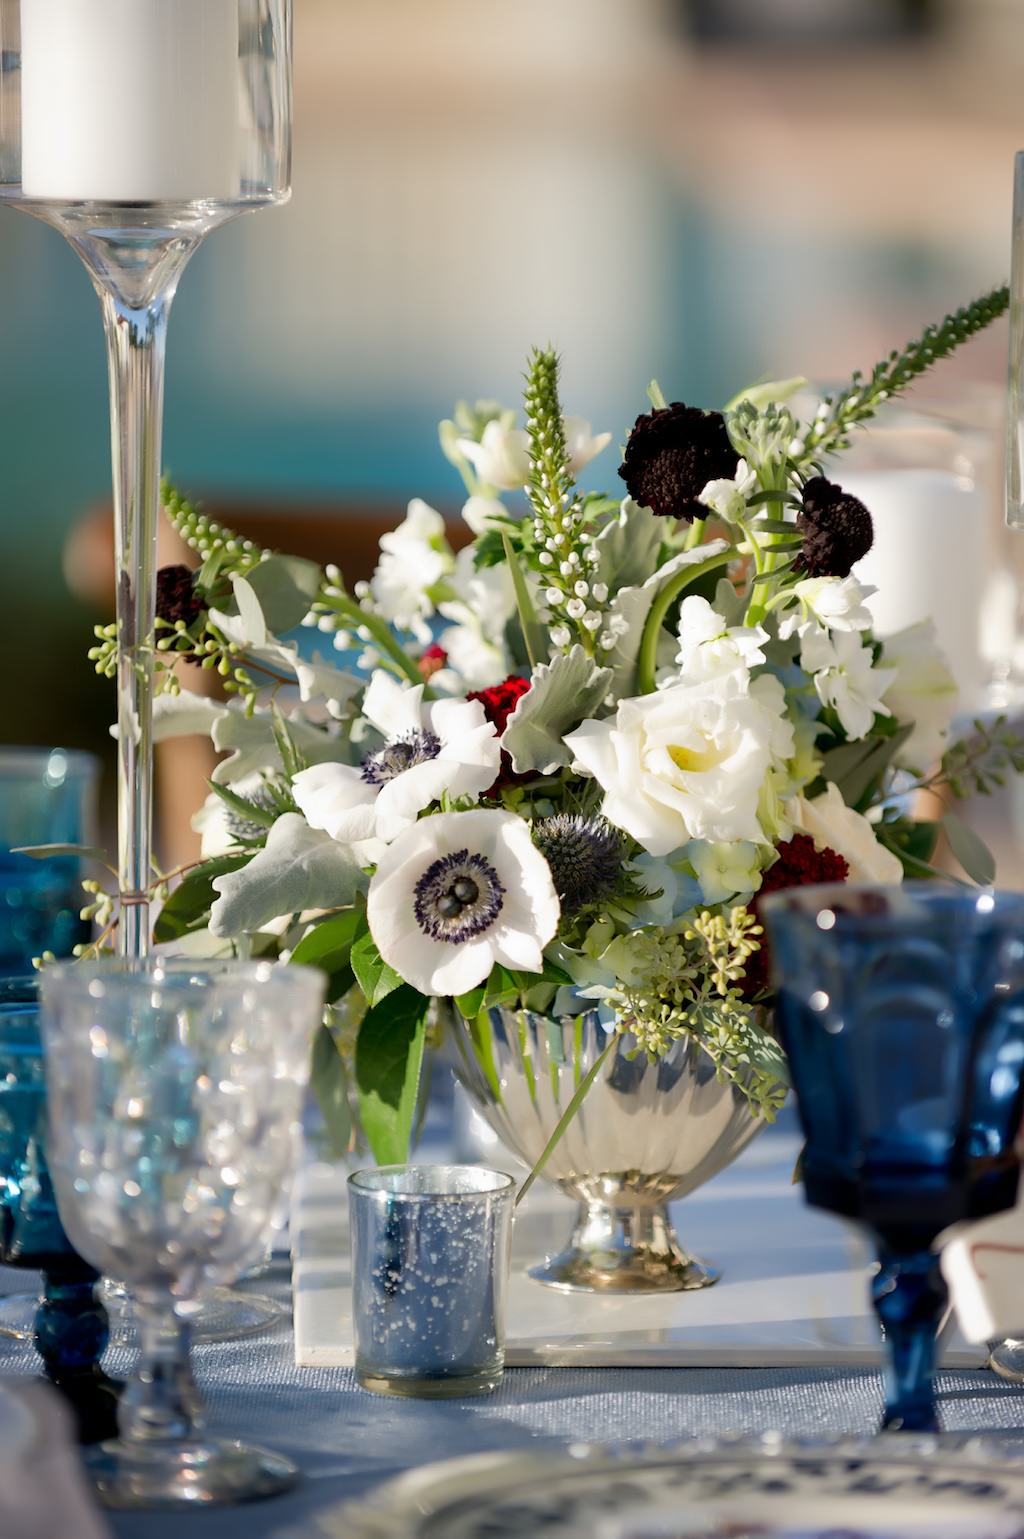 French Countryside Inspired Wedding Reception Table Decor with Low Anemone, Dark Red and Burgundy and White Flower Centerpiece with Greenery in Antique Silver Bowl Vase, with Blue Colored Drinking Glasses | Tampa Wedding Planner Kelly Kennedy Weddings and Events